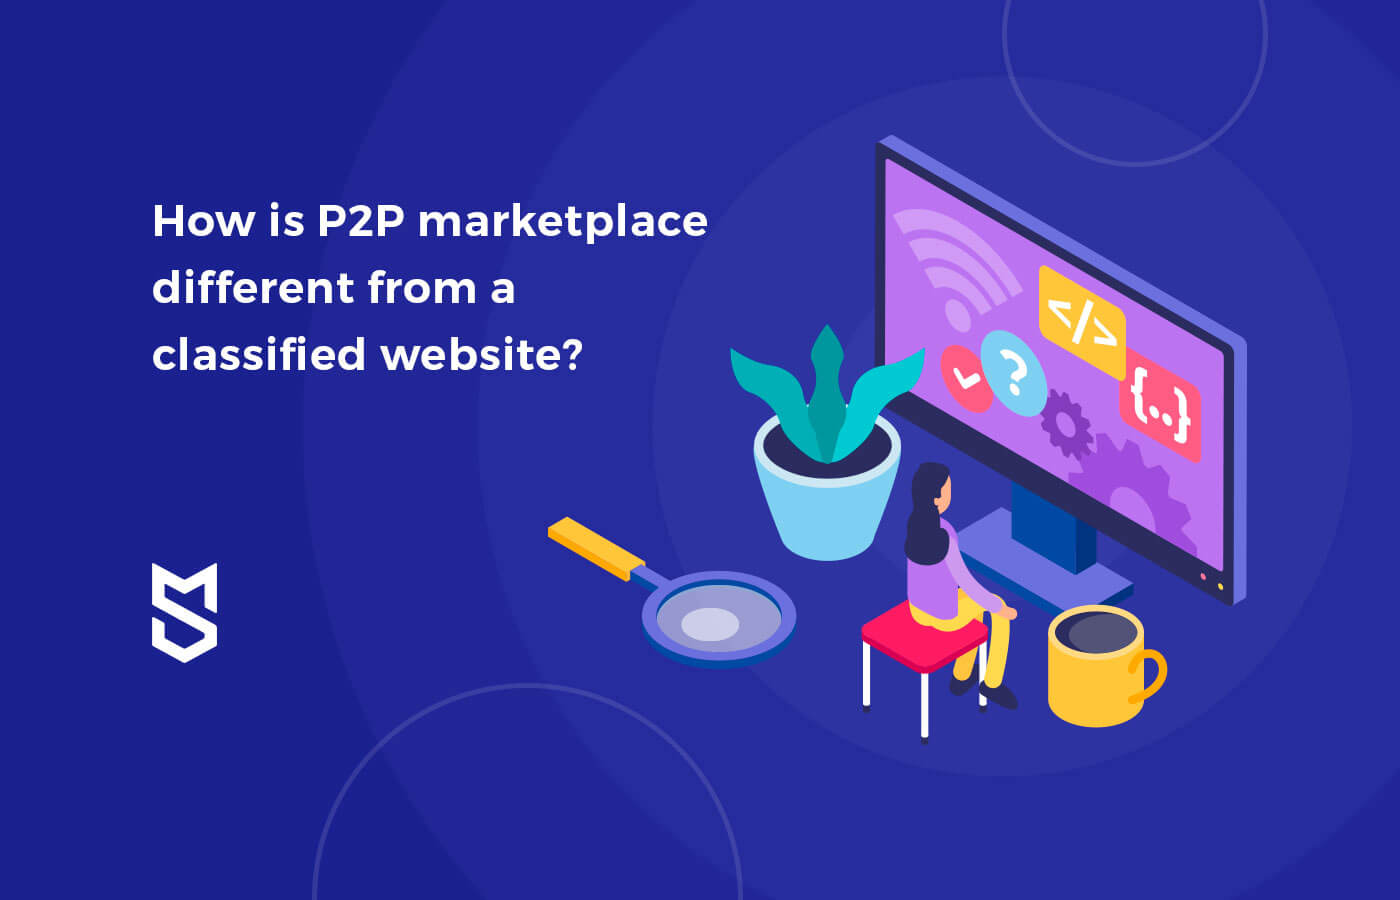 How is a P2P marketplace different from a classified website